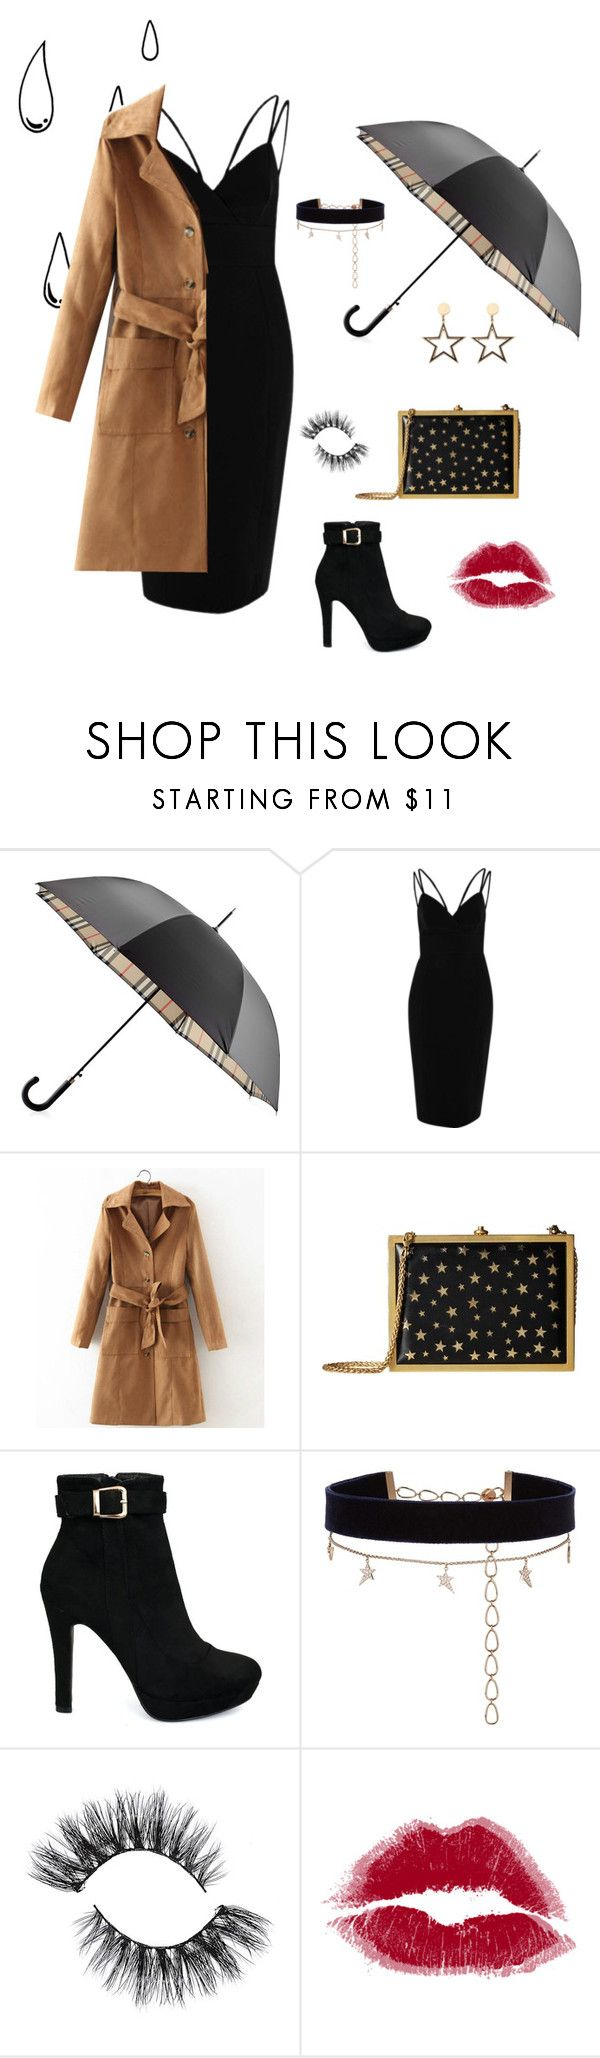 """""""ros // mac miller"""" by songinspiredfits ❤ liked on Polyvore featuring Old Navy, Burberry, River Island, Lavish Alice, Alice + Olivia and Diane Kordas"""